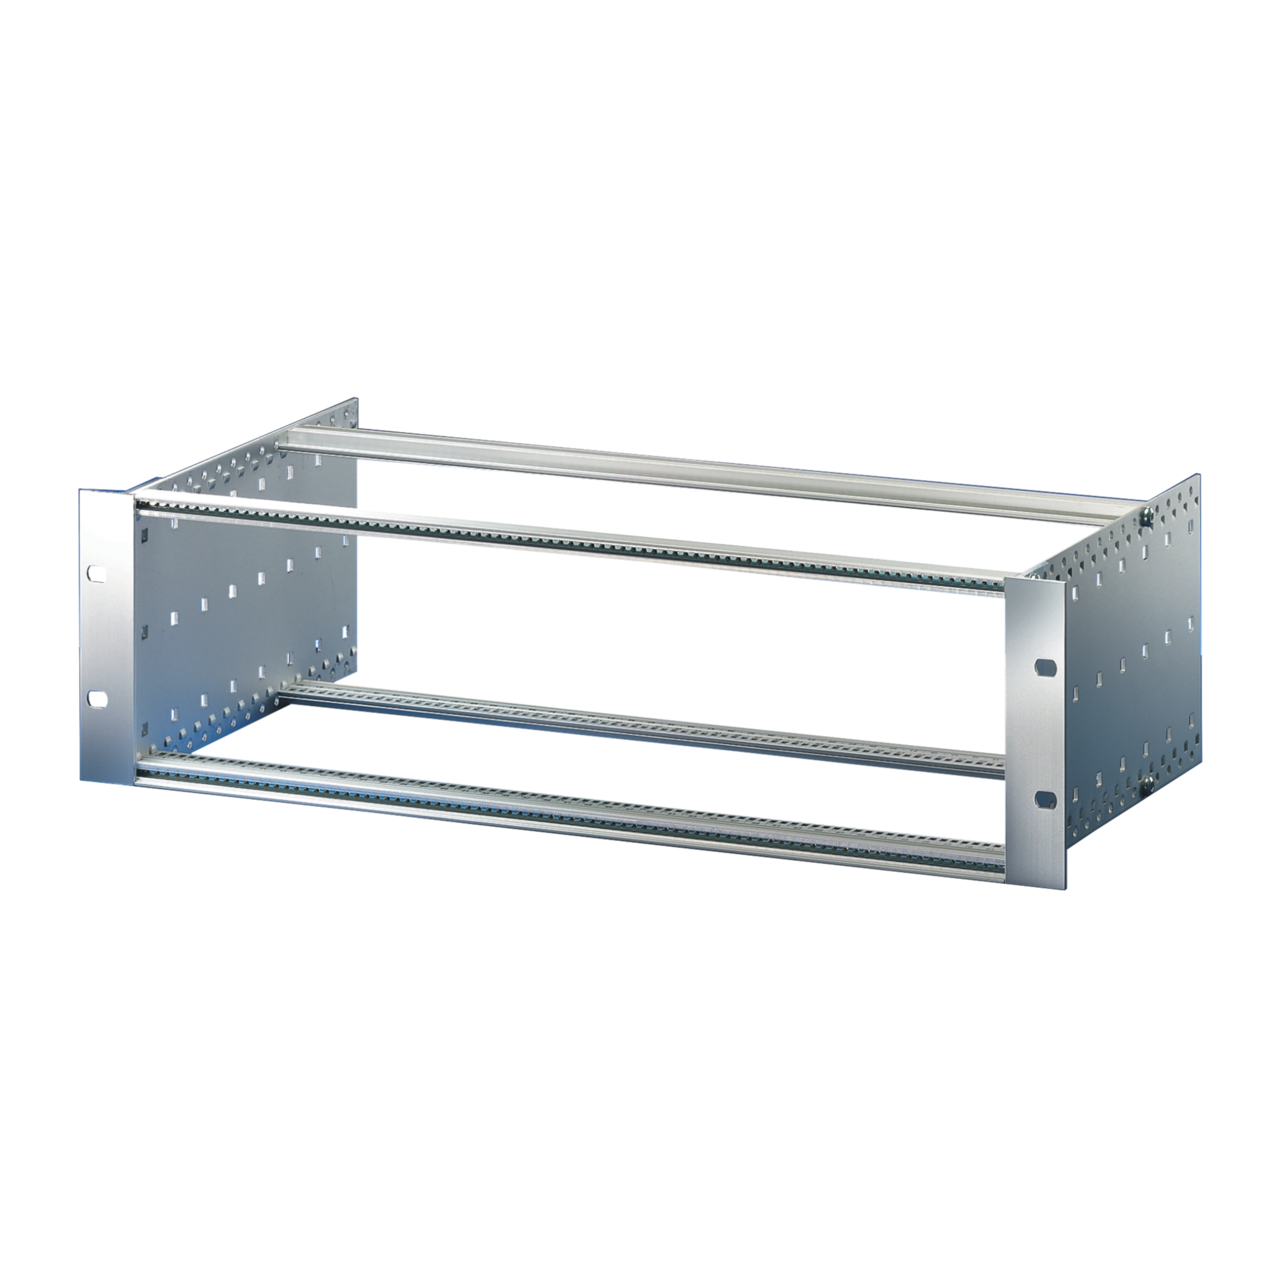 Image for EuropacPRO kit, heavy design, unshielded, for backplane mounting from Schroff | Europe, Middle East, Africa and India